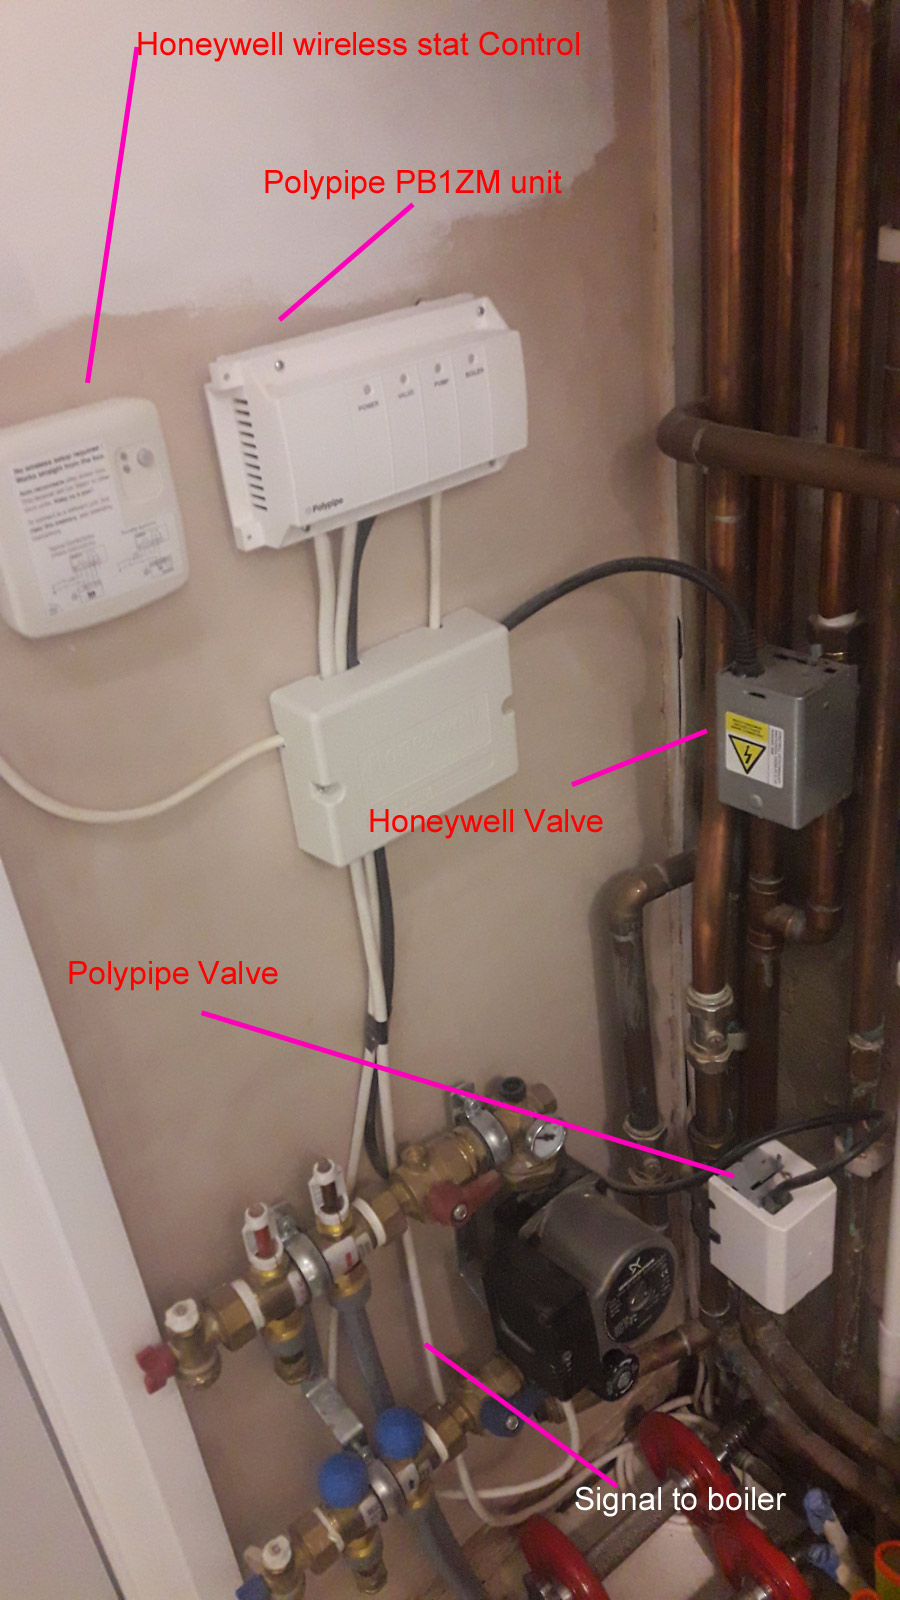 Combi with UFH / 2 valves but 1 Zone control | DIYnot Forums on boiler aquastat wiring, boiler installation diagram, boiler thermostat wiring, boiler water feeder wiring, boiler control wiring, williamson boiler wiring, with a boiler valves wiring, boiler pump wiring, boiler radiator heating system, heat zone valves wiring, boiler damper wiring, home boiler wiring, hot water boiler wiring, 3 zone valves wiring, boiler relay wiring diagram, boiler electrical wiring, taco circulator pump wiring,